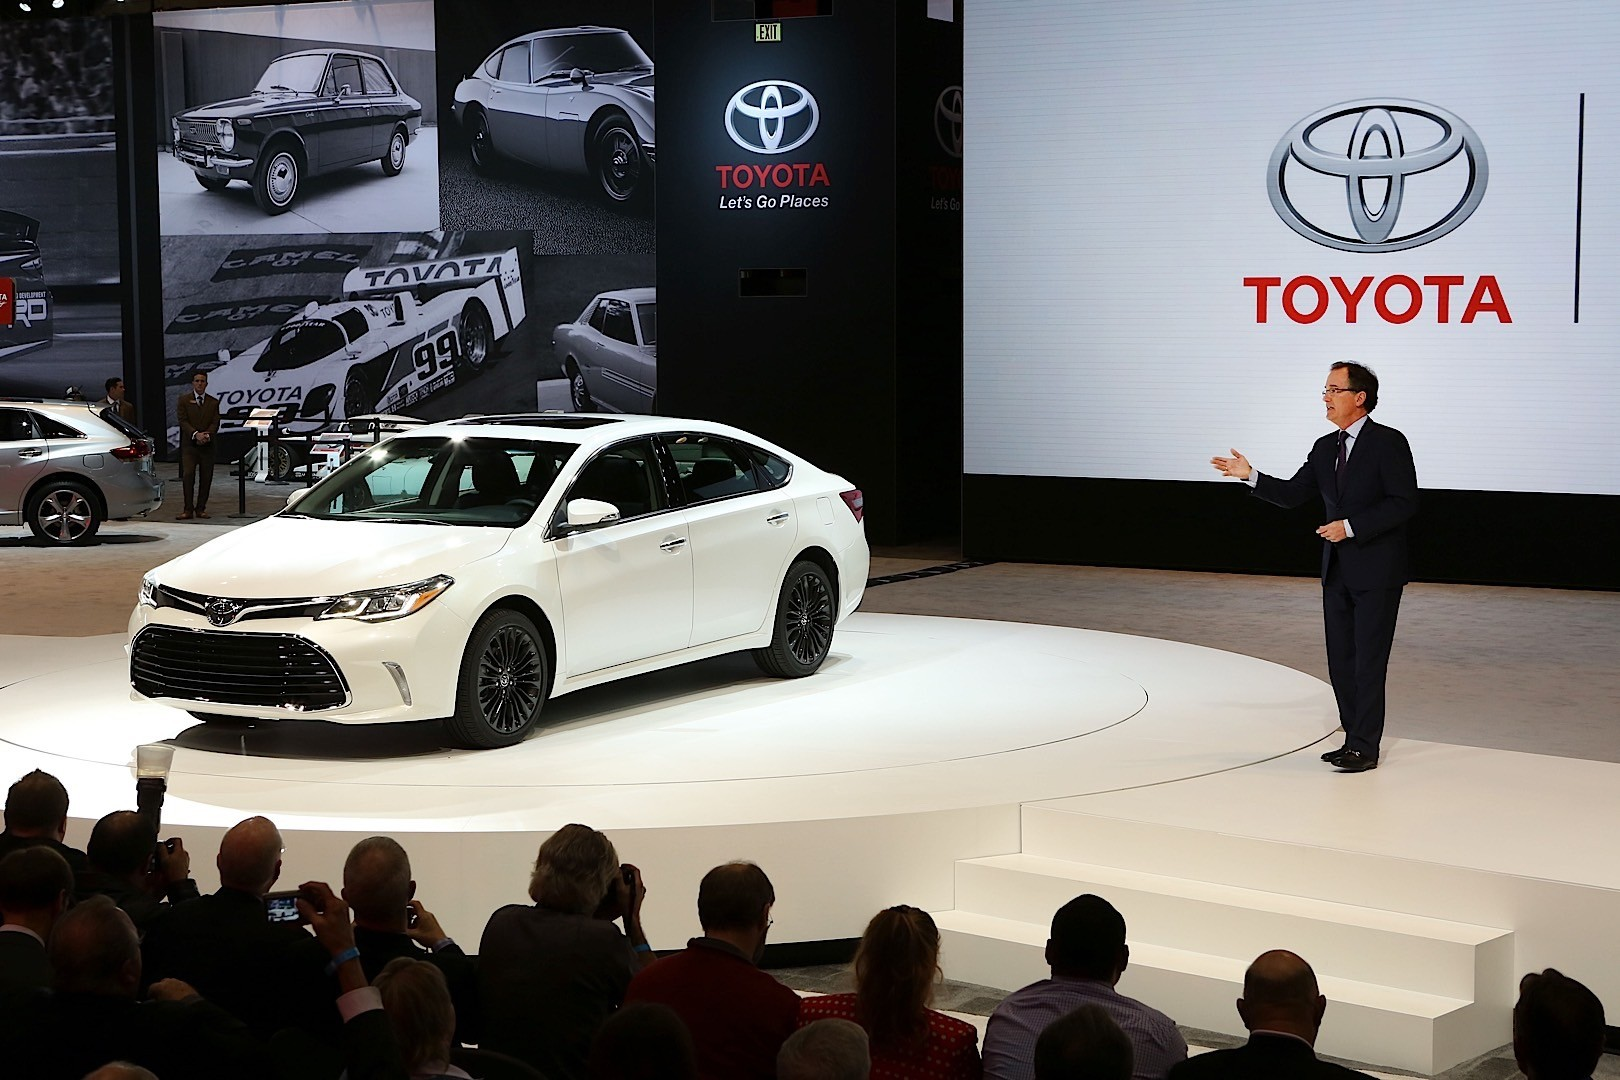 Toyota Avalon Shows Off New Face At Chicago Auto Show - Toyota show car